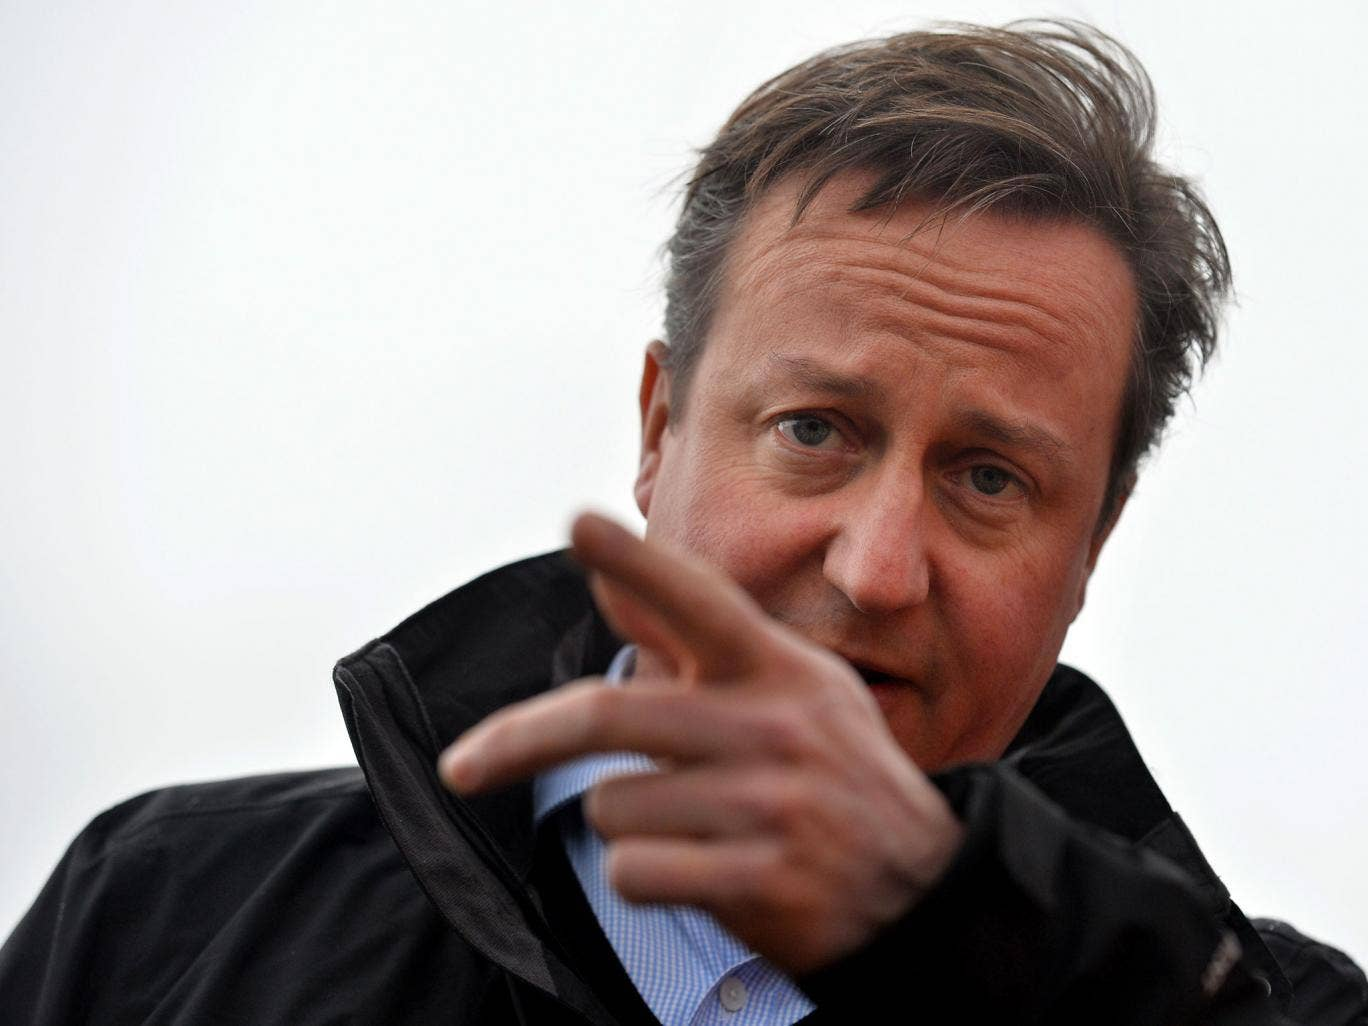 Britain's Prime Minister David Cameron gestures as he speaks to local firefighters in the village of Yalding during a visit on December 27, 2013 in Yalding, England. Mr Cameron spoke to residents in the village in southeast England that was effected by fl